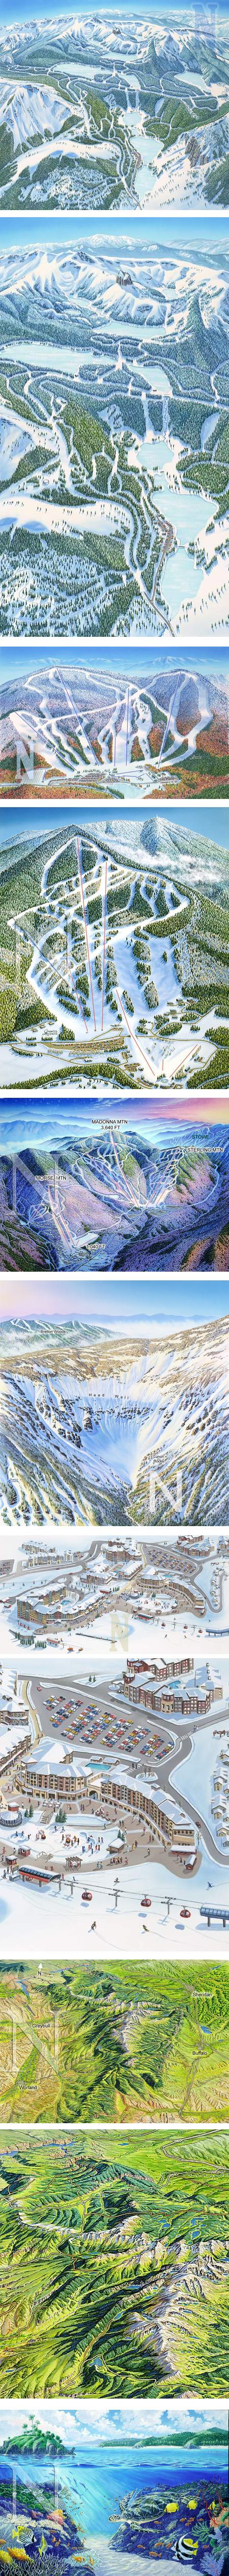 James Niehues, hand painted aerial maps of ski resorts